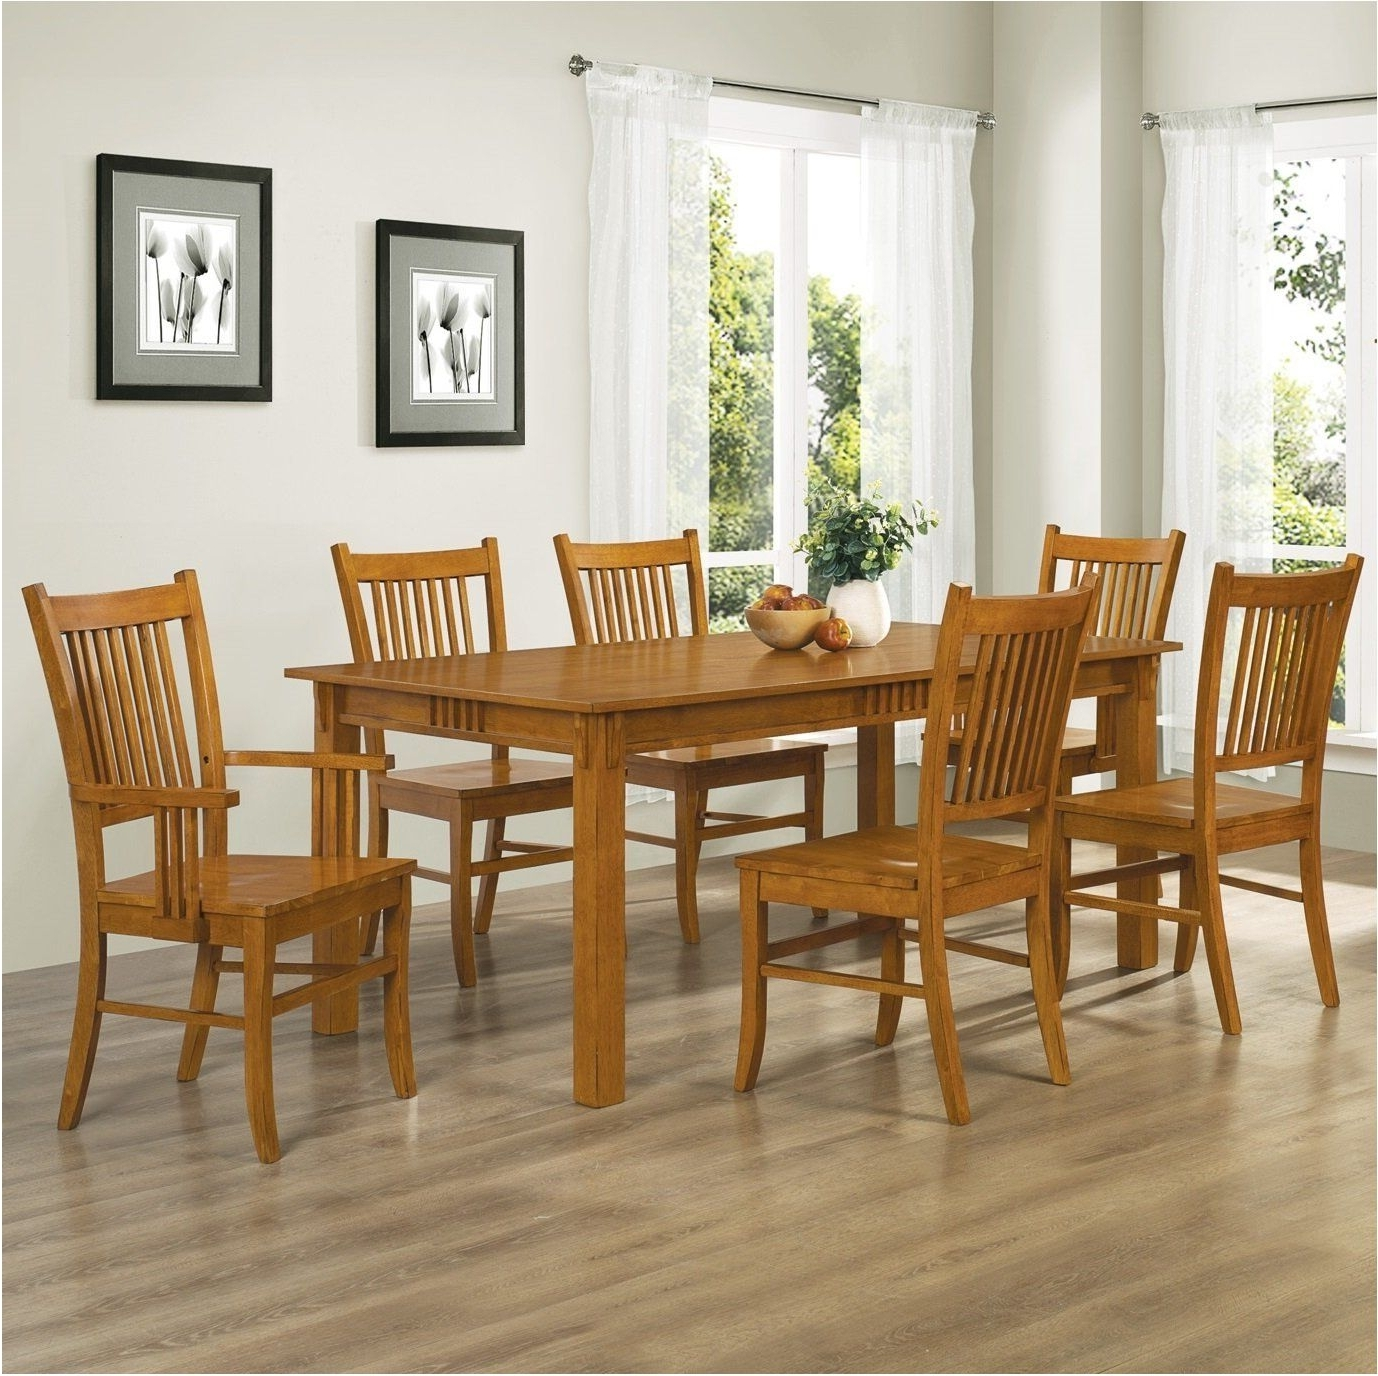 Dining Tables And 6 Chairs Intended For Latest Terrific 3 Steps To Pick The Ultimate Dining Table And 6 Chairs Set (View 25 of 25)